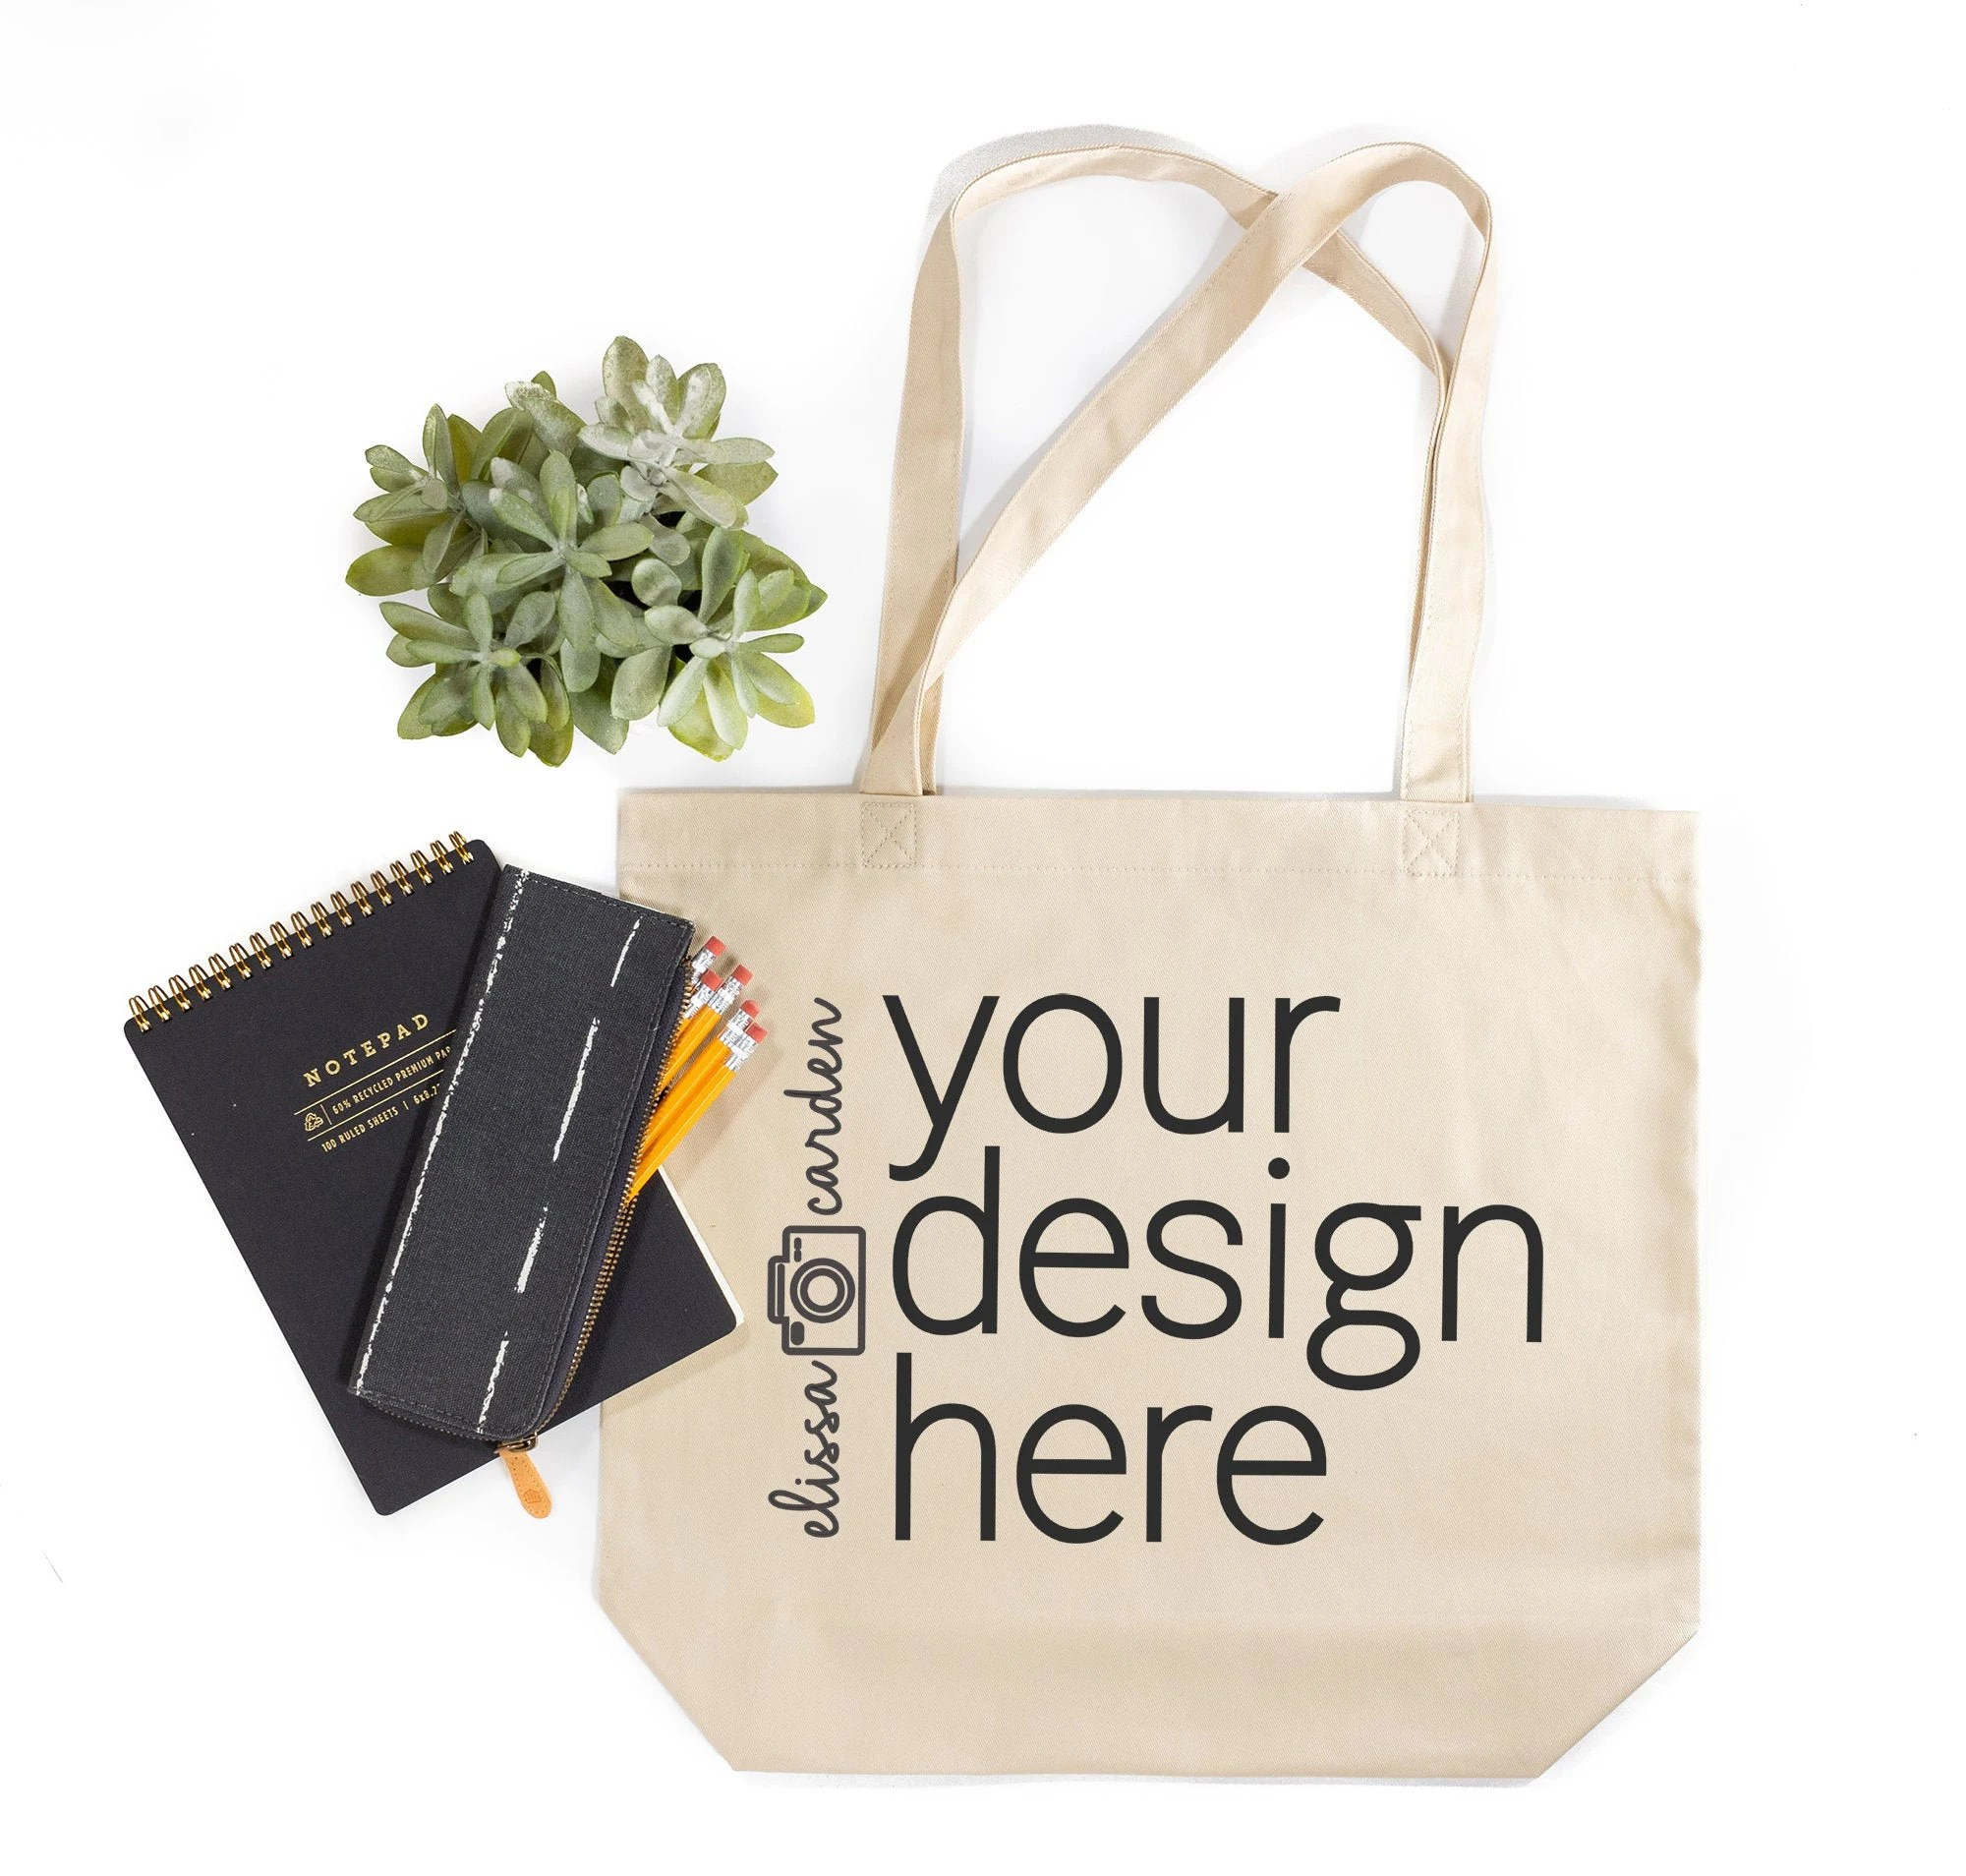 This durable shopper tote holds 30+ lbs. Organic Tote Bag Mockup Oyster Tote Mockup Bag Totes Etsy